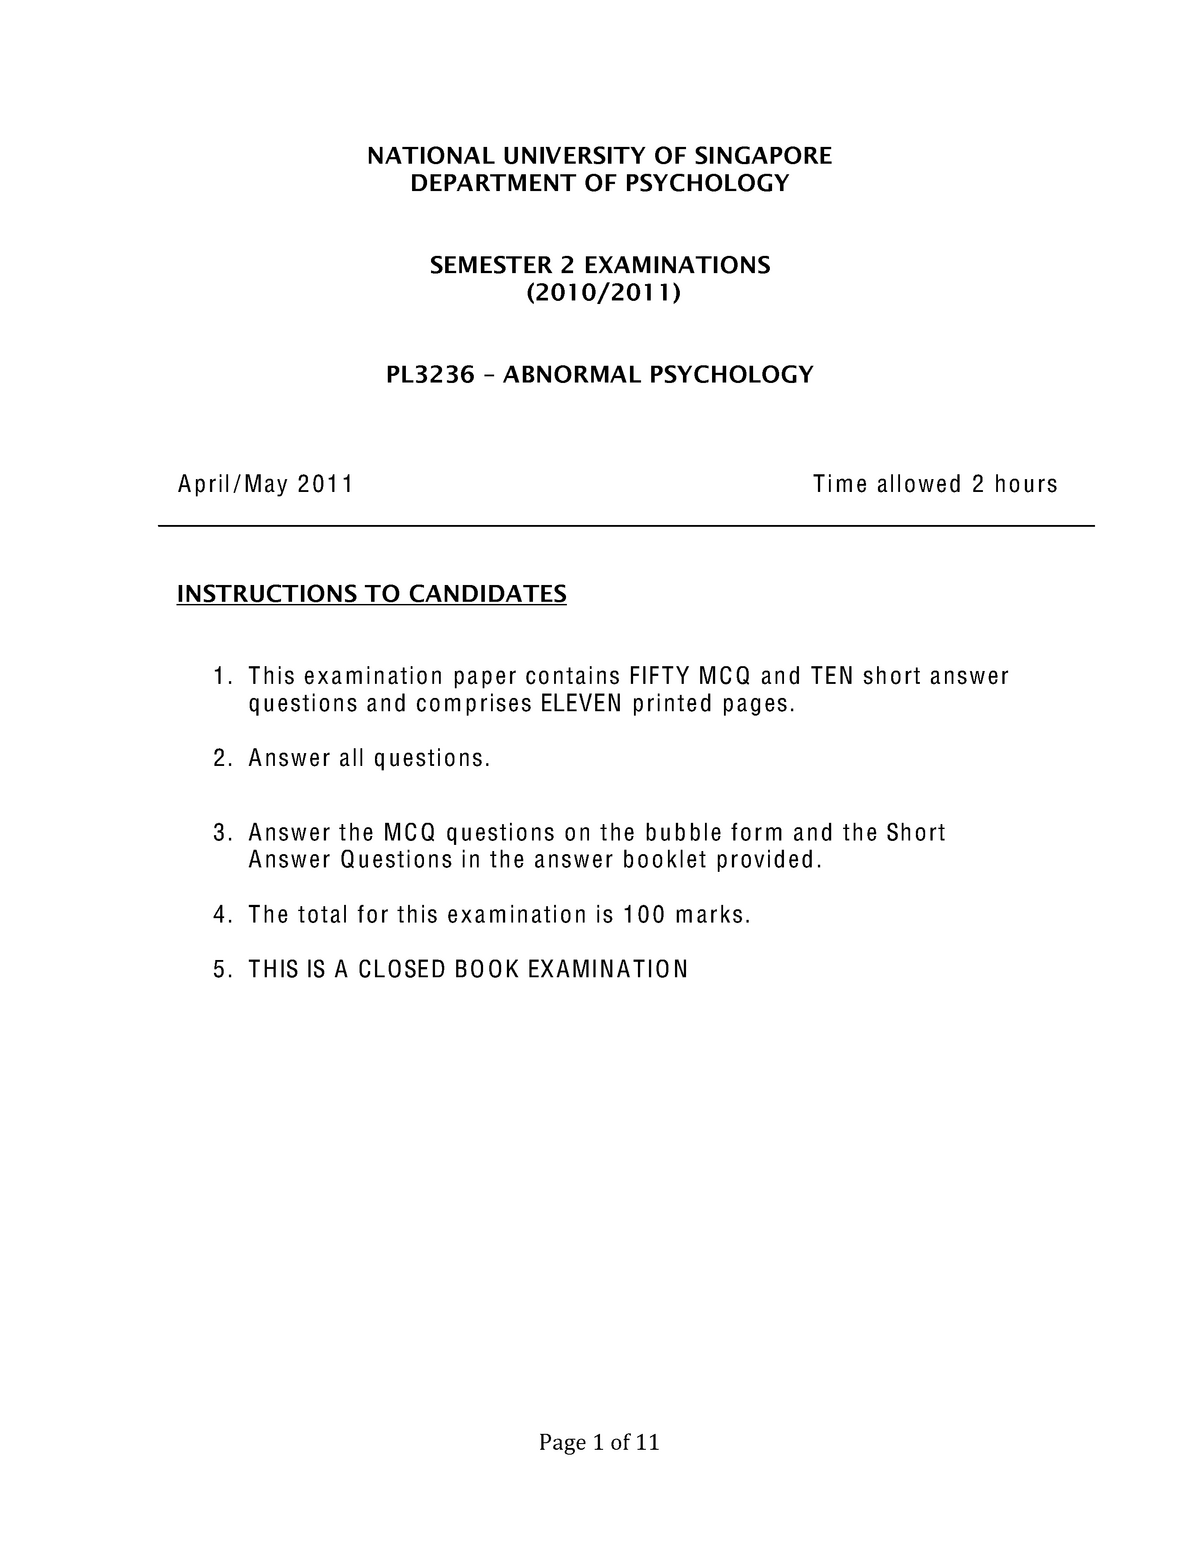 Exam 2011 - PL3236: Abnormal Psychology - StuDocu